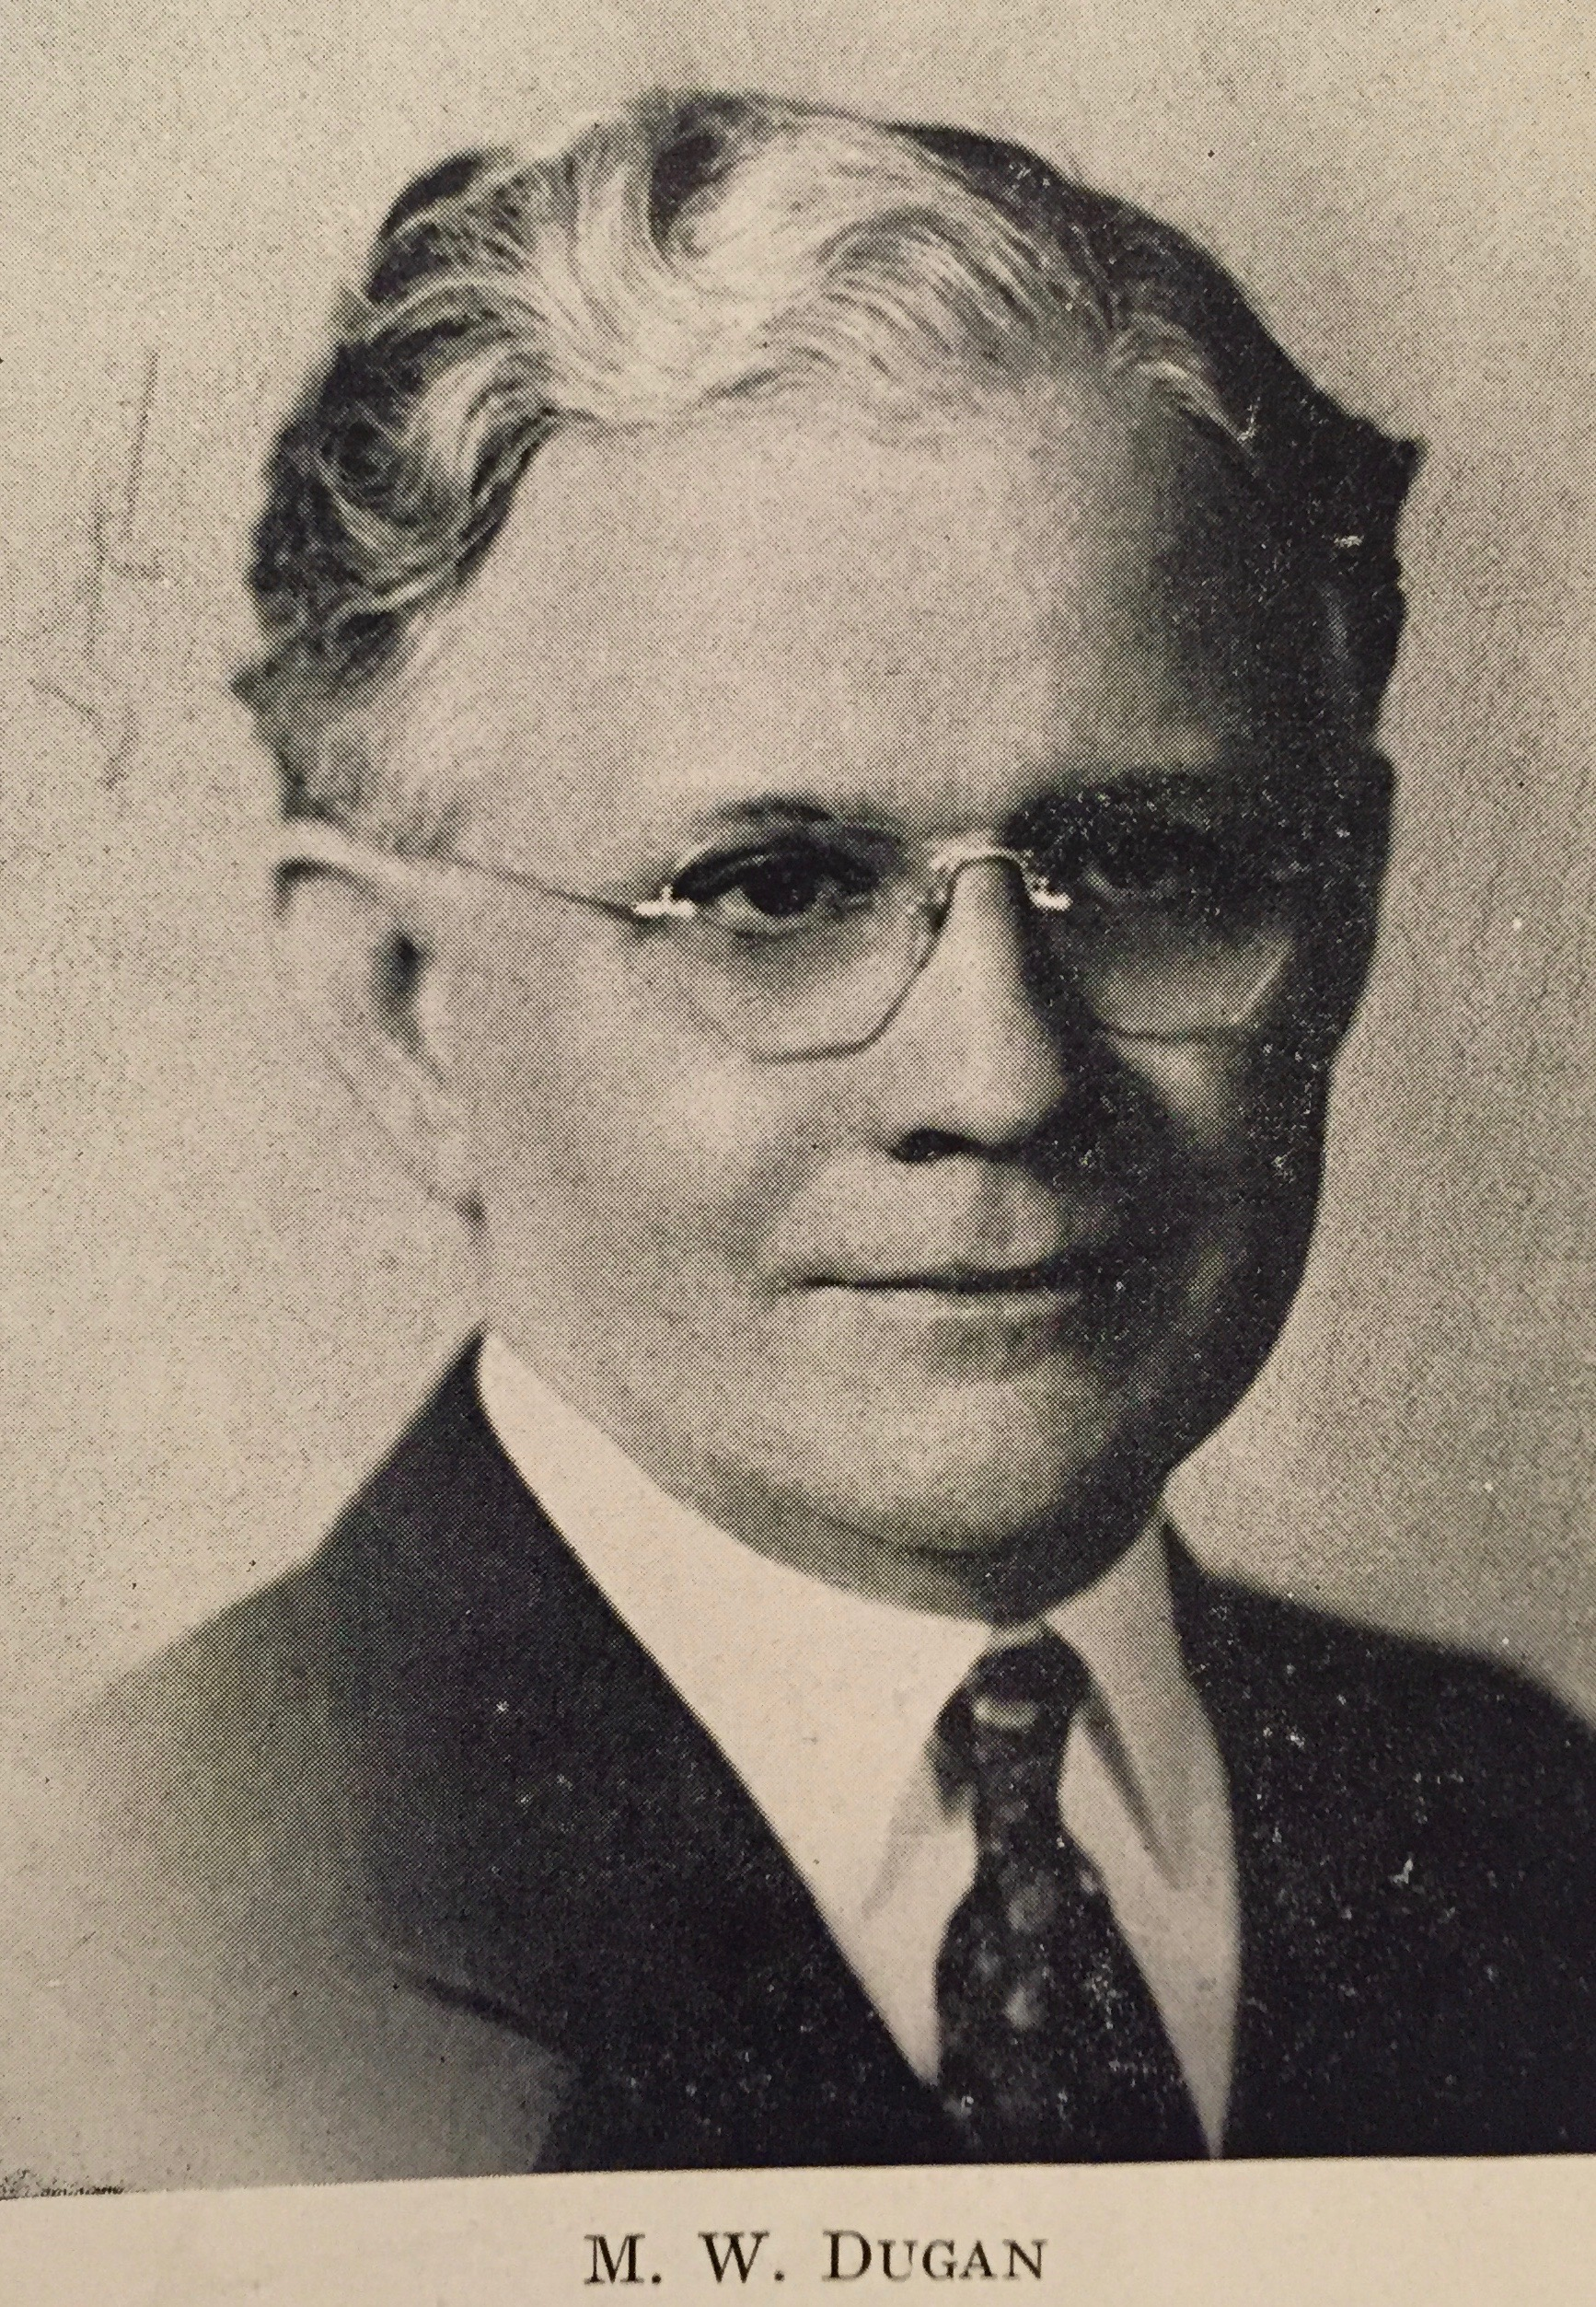 Mathias W. Dugan, second president of the Emmons-Hawkins Hardware Company